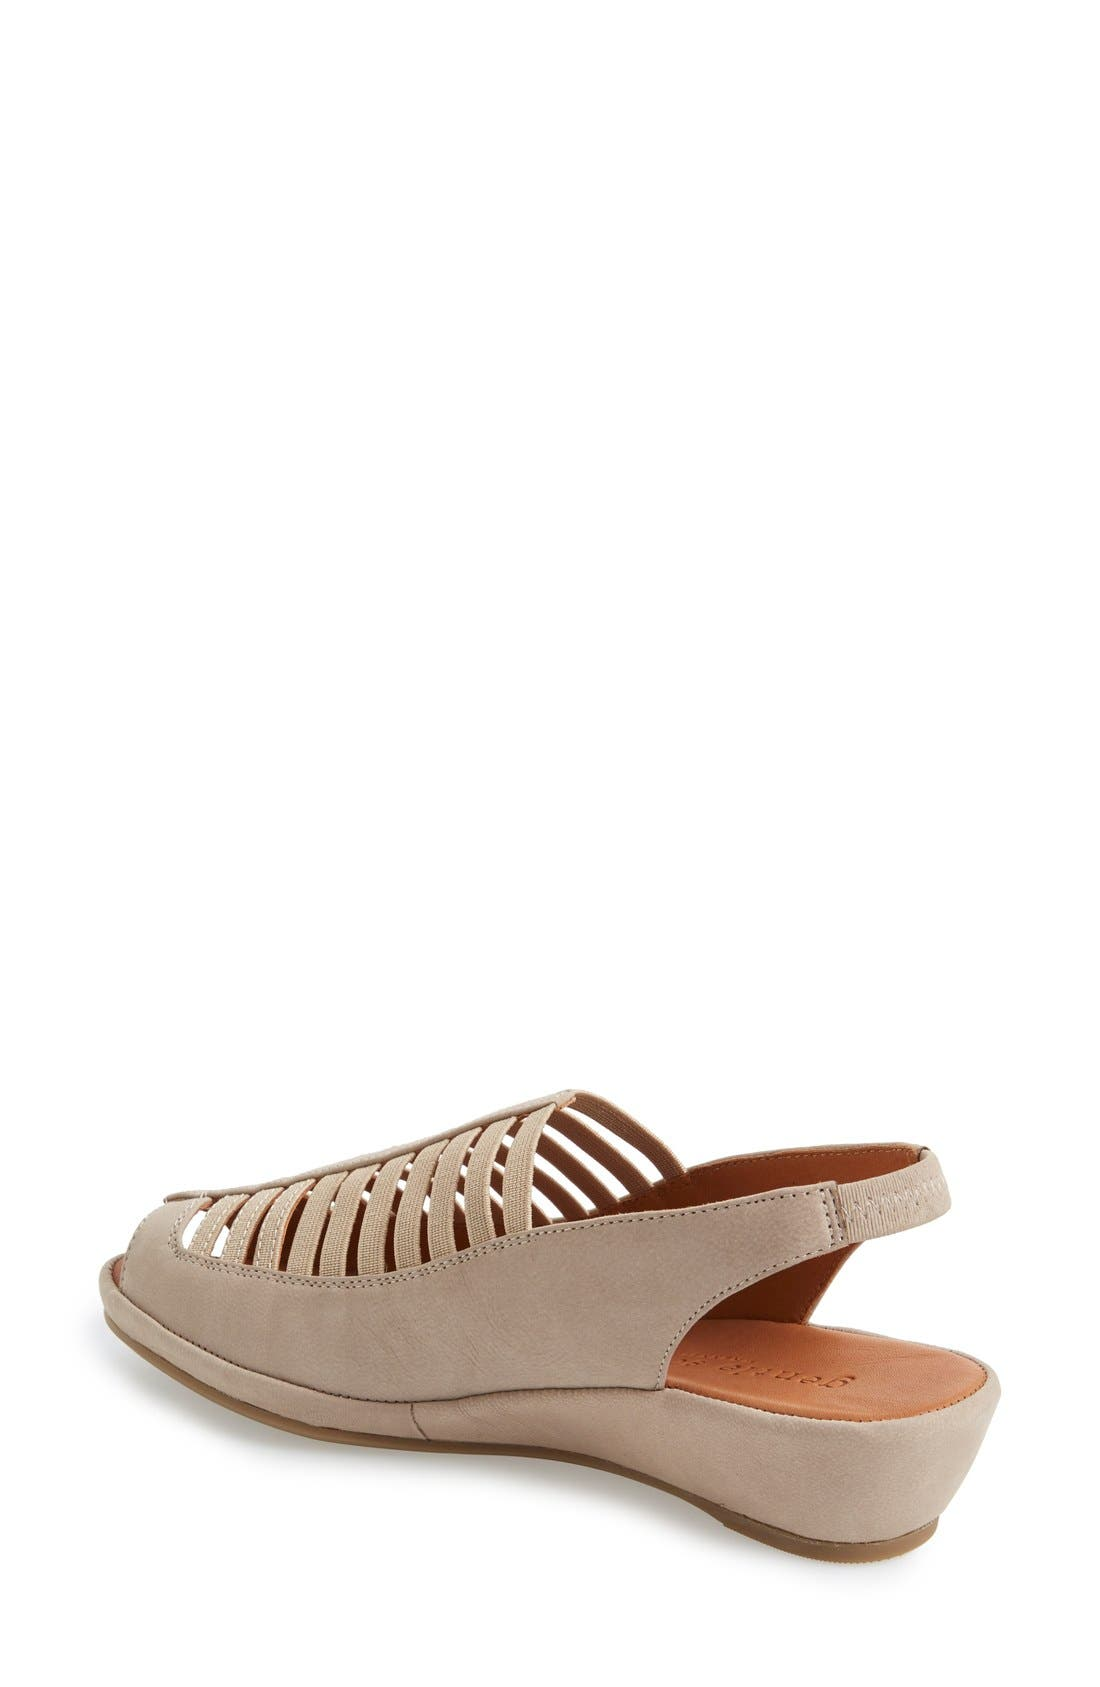 by Kenneth Cole 'Lee' Sandal,                             Alternate thumbnail 11, color,